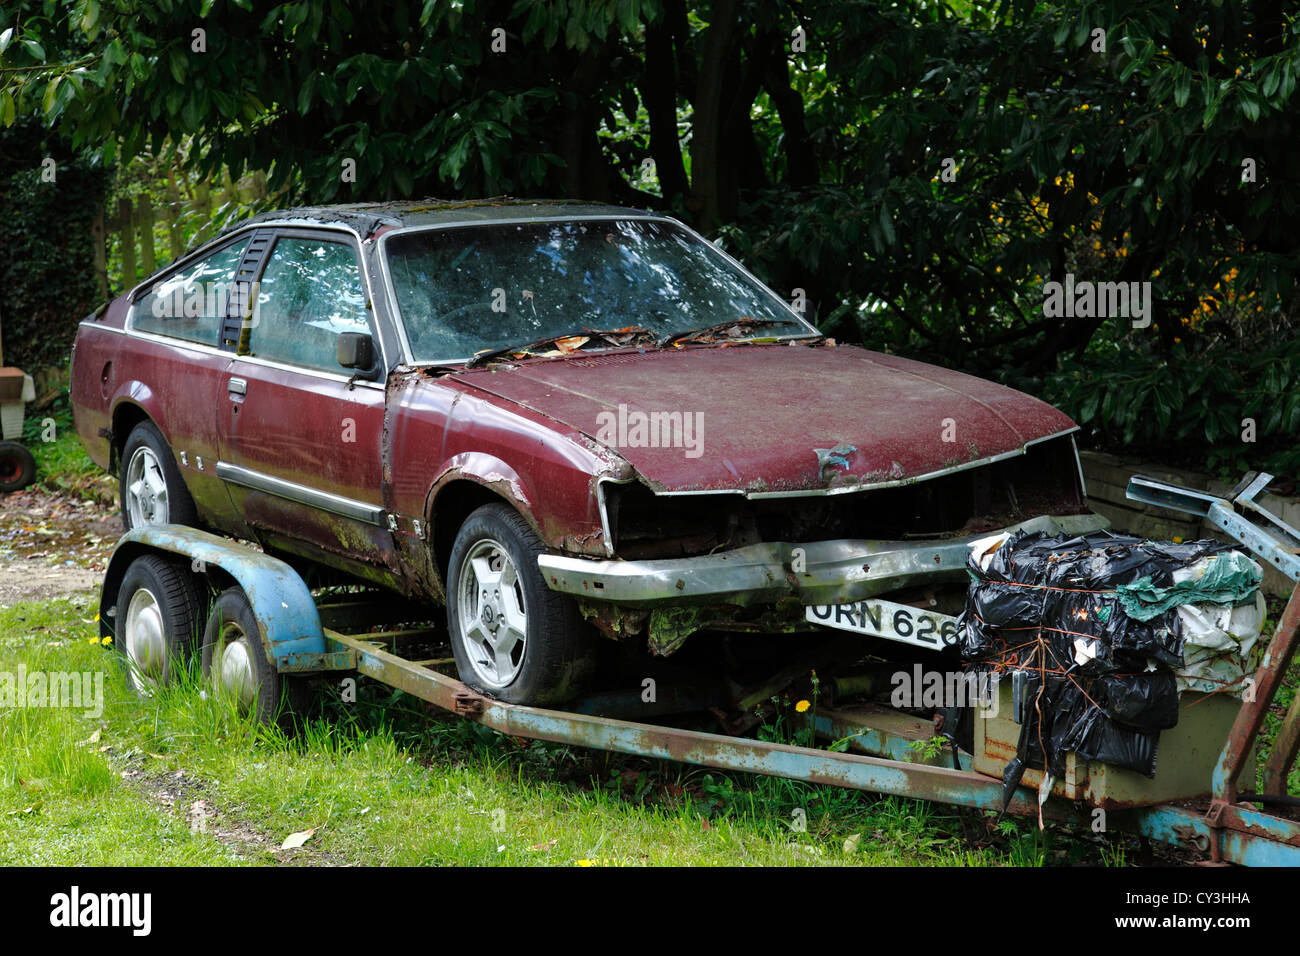 An old  car on a trailer in the U.K. - Stock Image